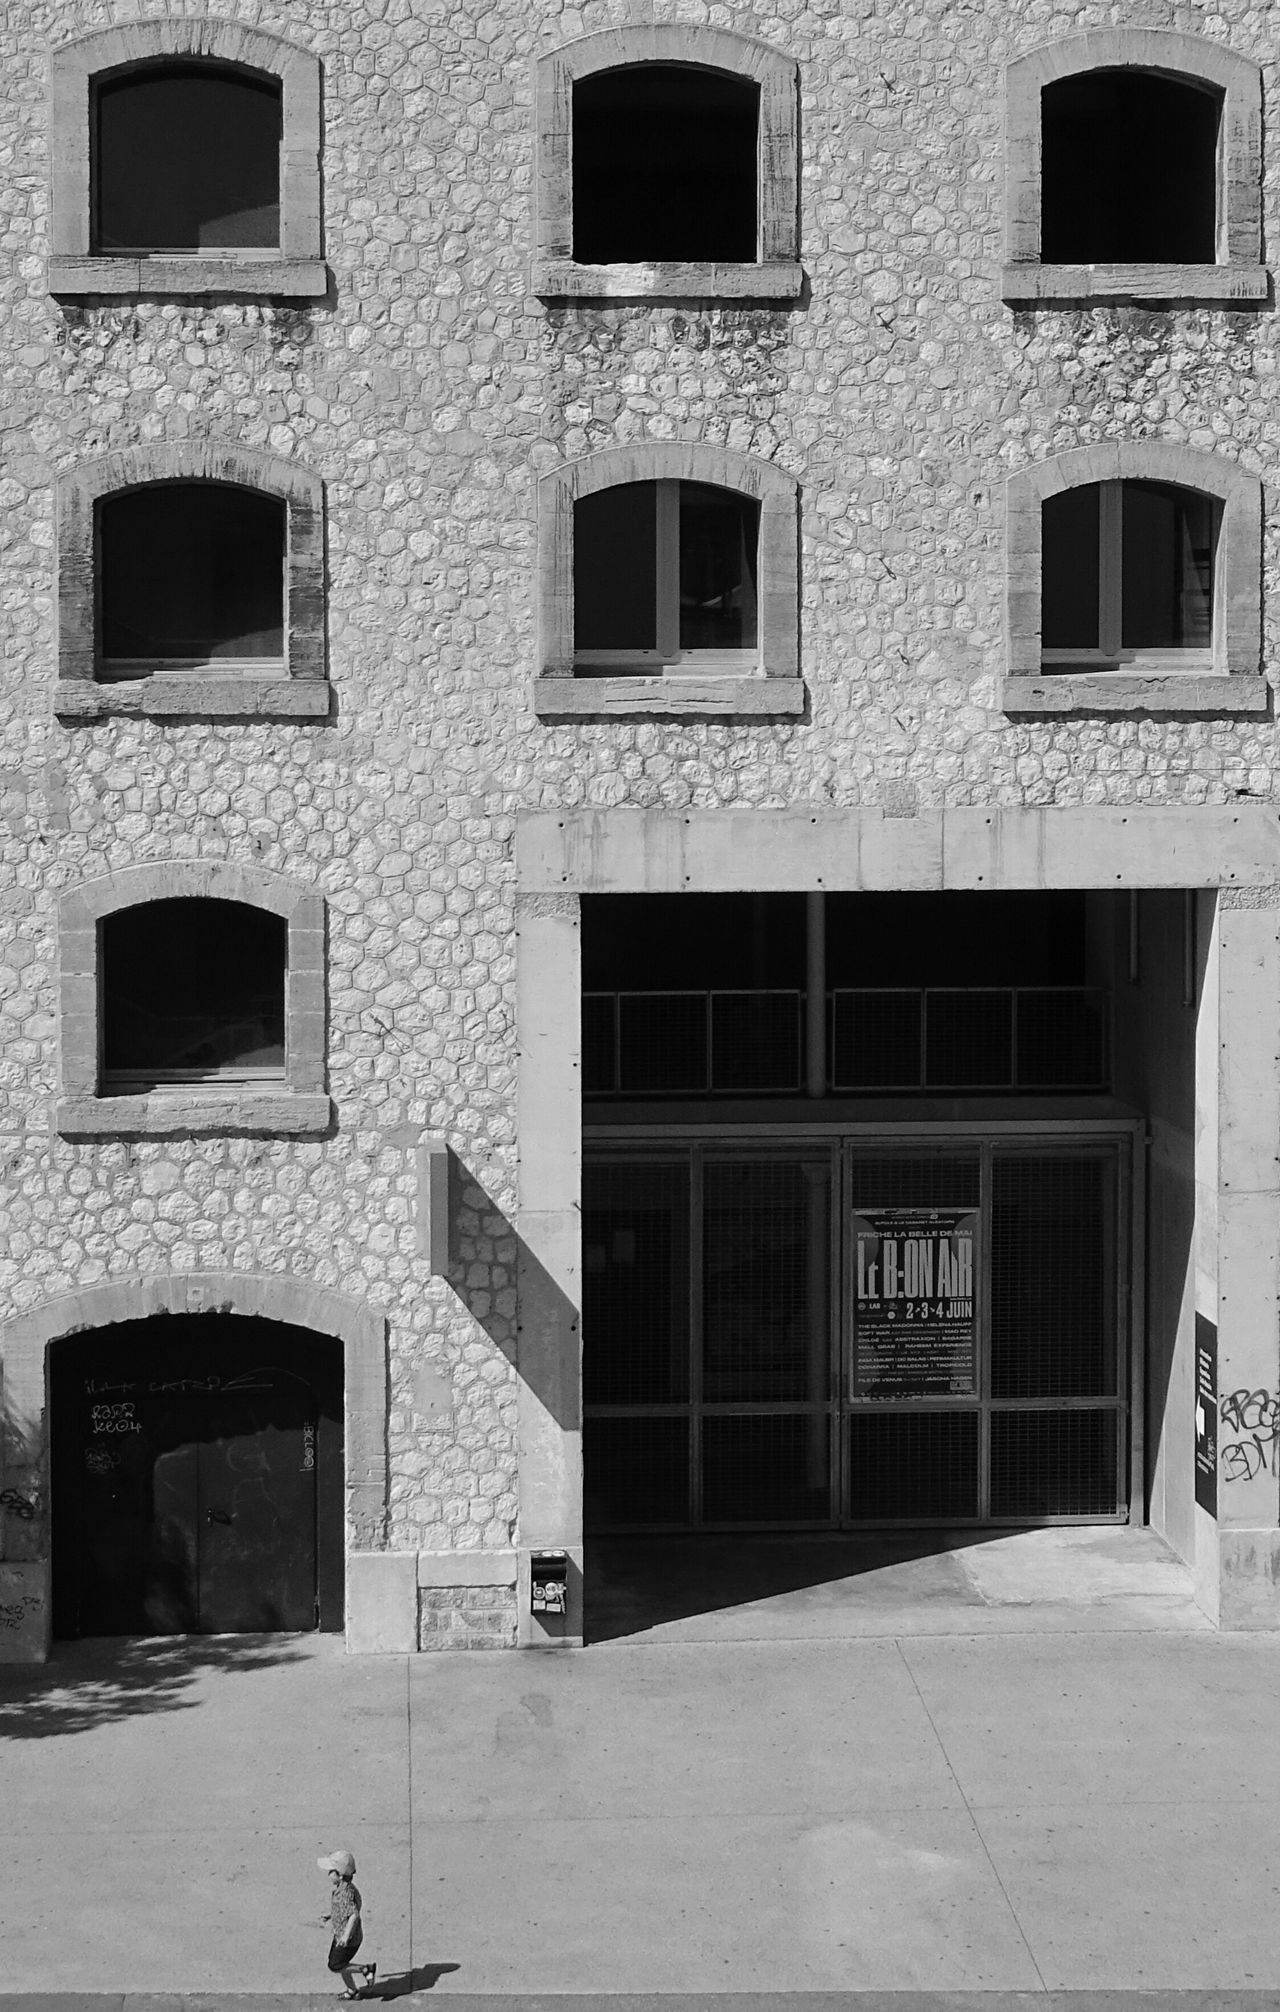 Window Building Exterior Architecture Built Structure Façade Outdoors No People Day Perspective Photooftheday Perception Is Reality SONY DSC-HX400V Blac&white  Black And White Collection  EyeEm Bnw Monochrome _ Collection Full Length Lifestyles Real People One Person Architecture Bnw_society La Friche Belle De Mai The Street Photographer - 2017 EyeEm Awards BYOPaper!